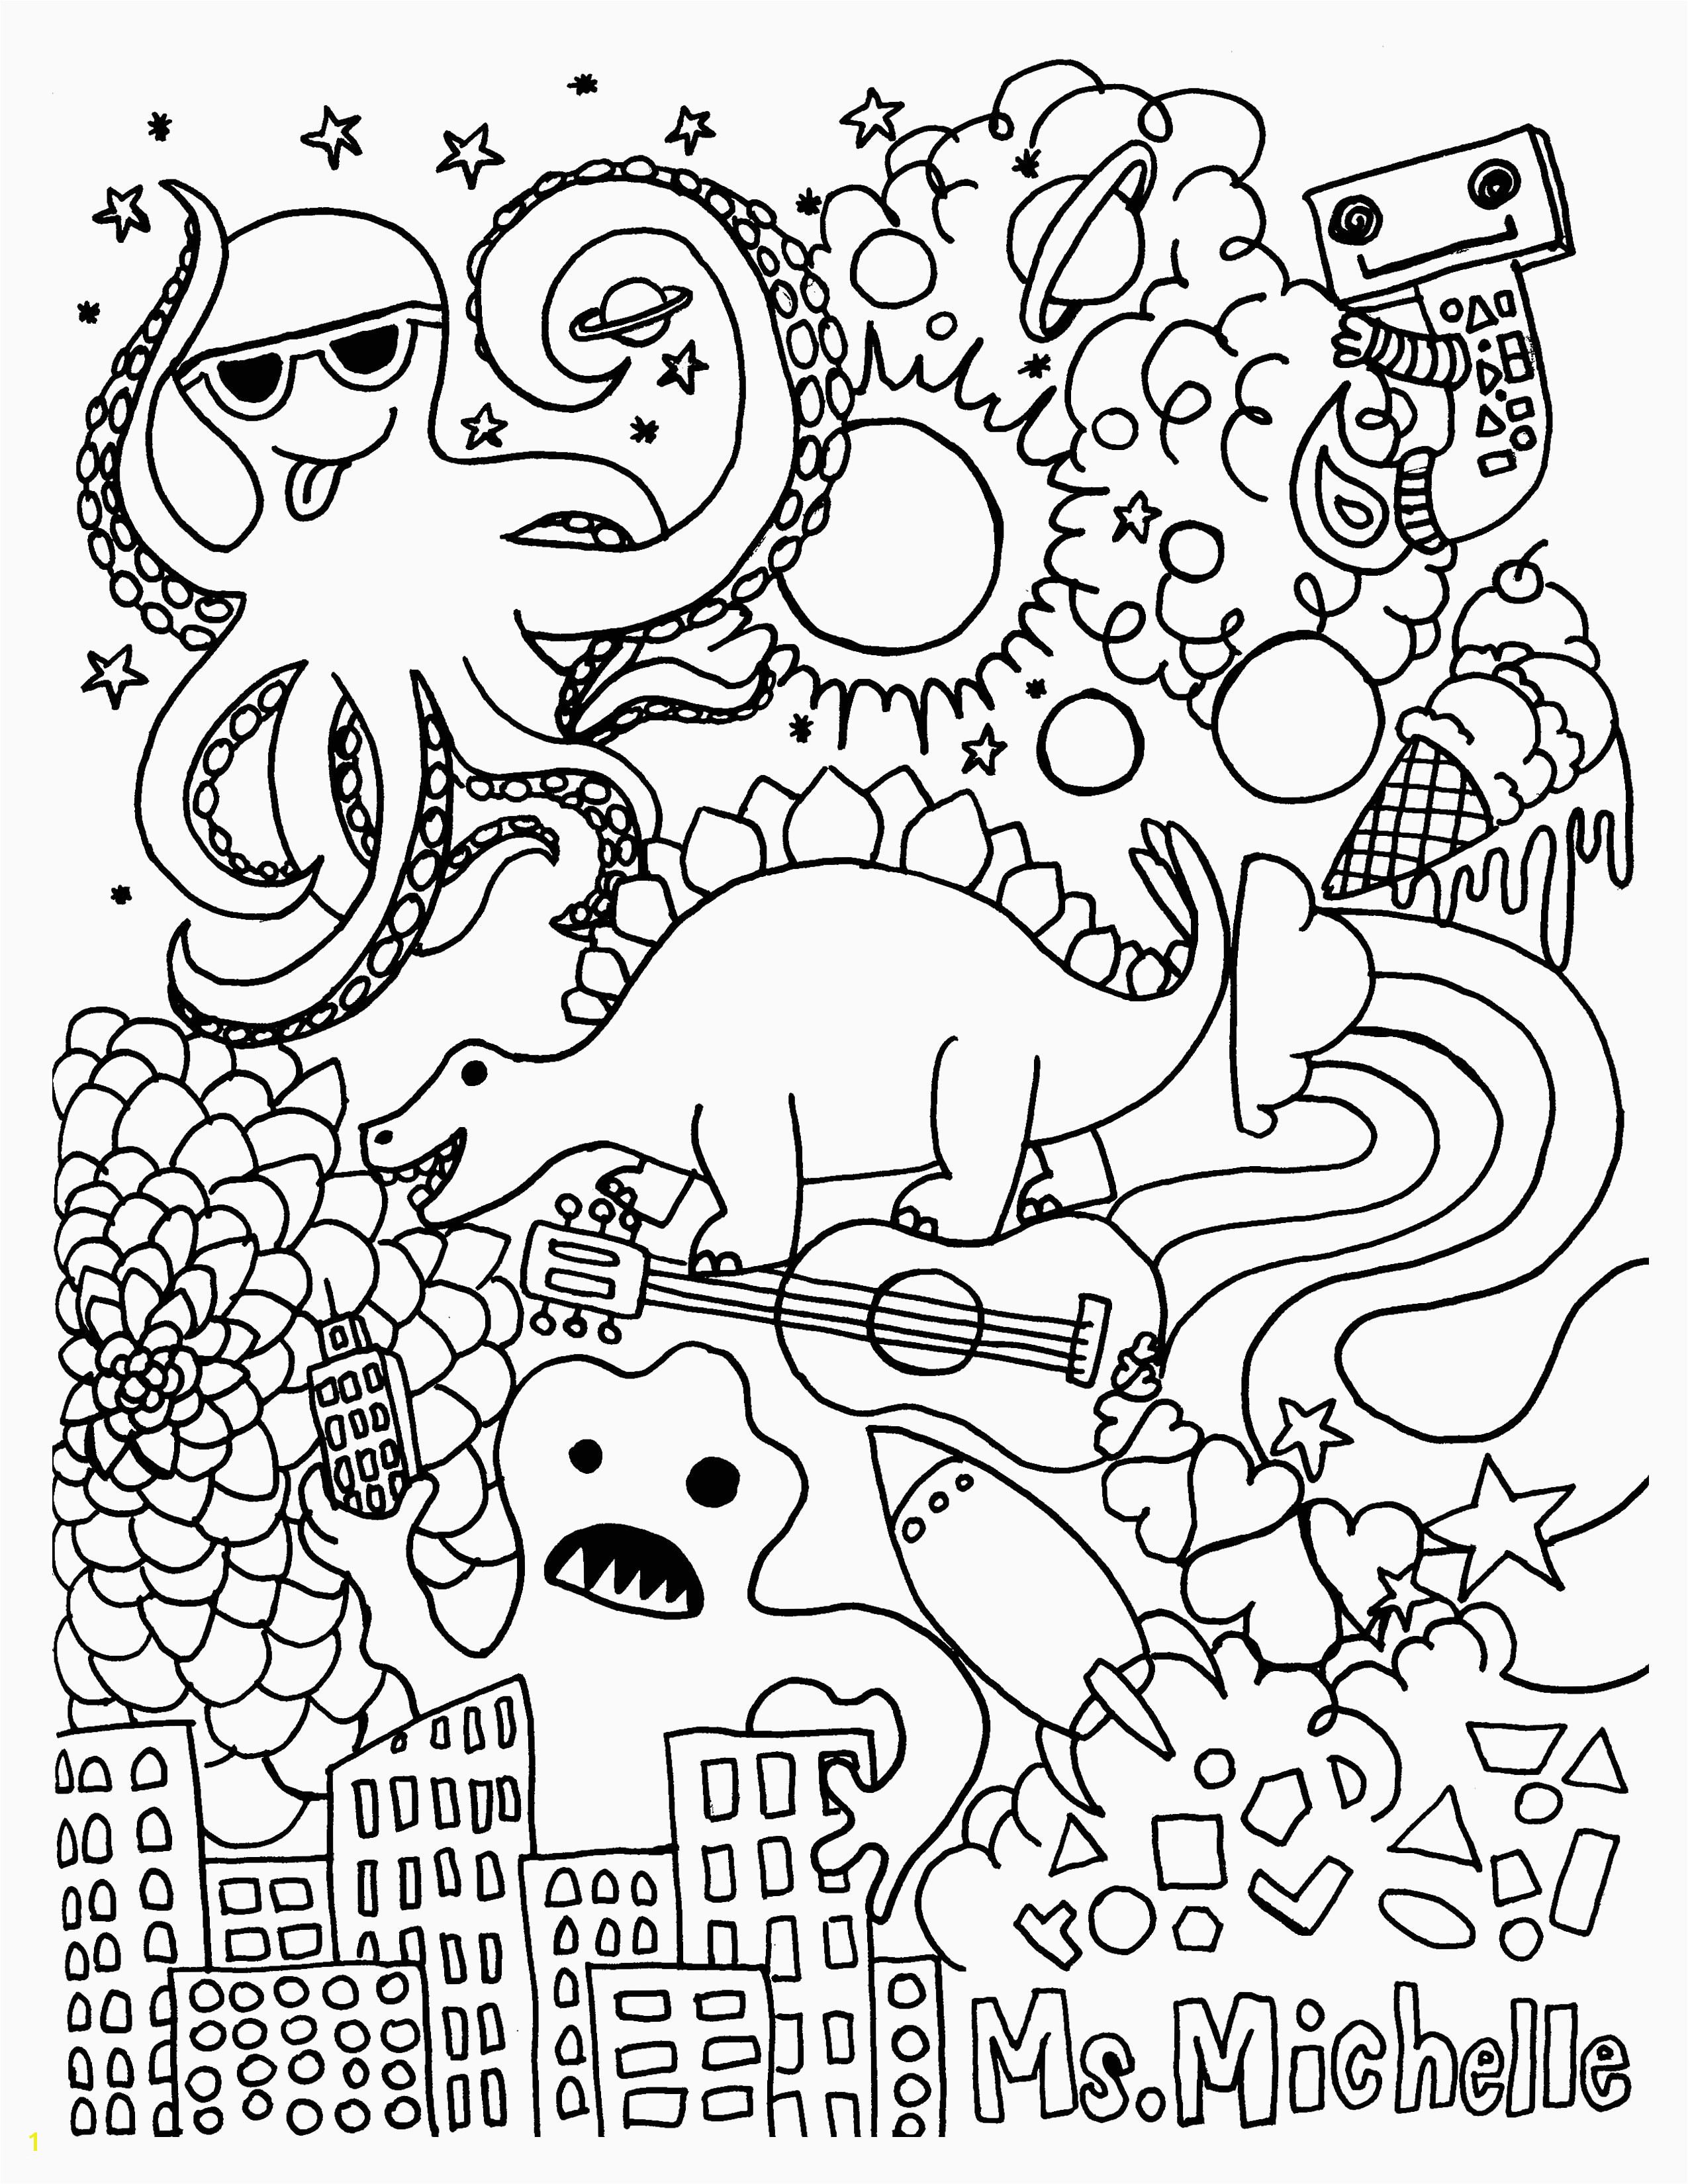 Vampire Coloring Pages Free Coloring Pages for Halloween Unique Best Coloring Page Adult Od Kids